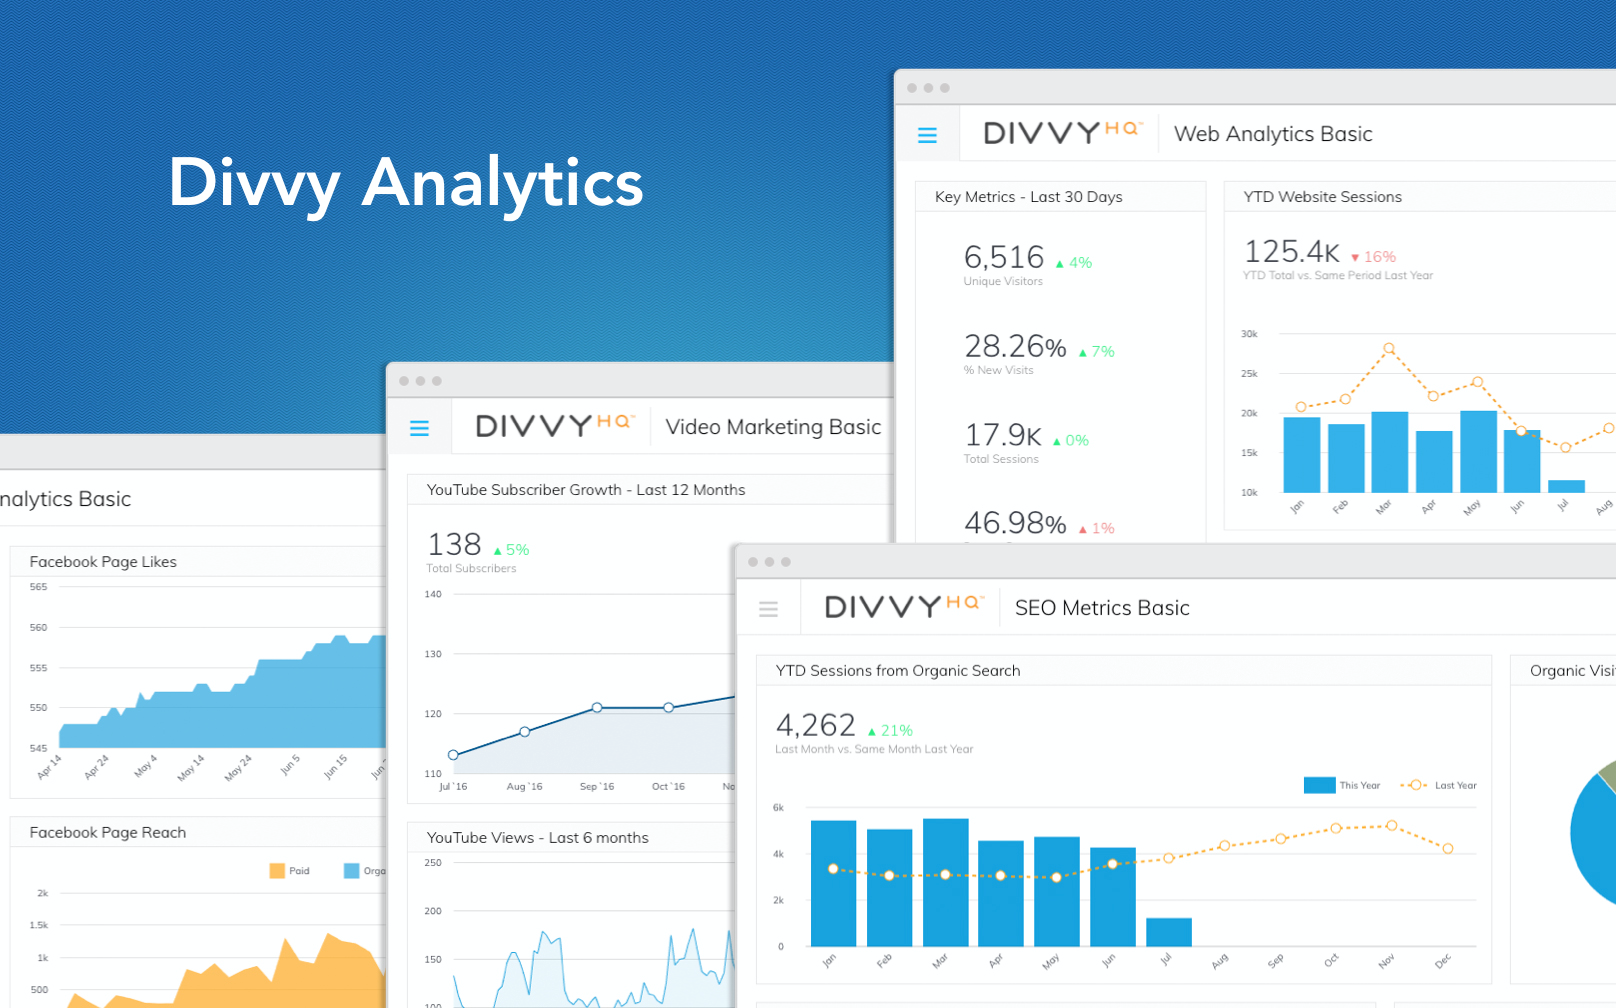 With more than 150 analytics integrations, Divvy's content analytics module provides performance dashboards to help producers see how their content is moving the needle (or not).